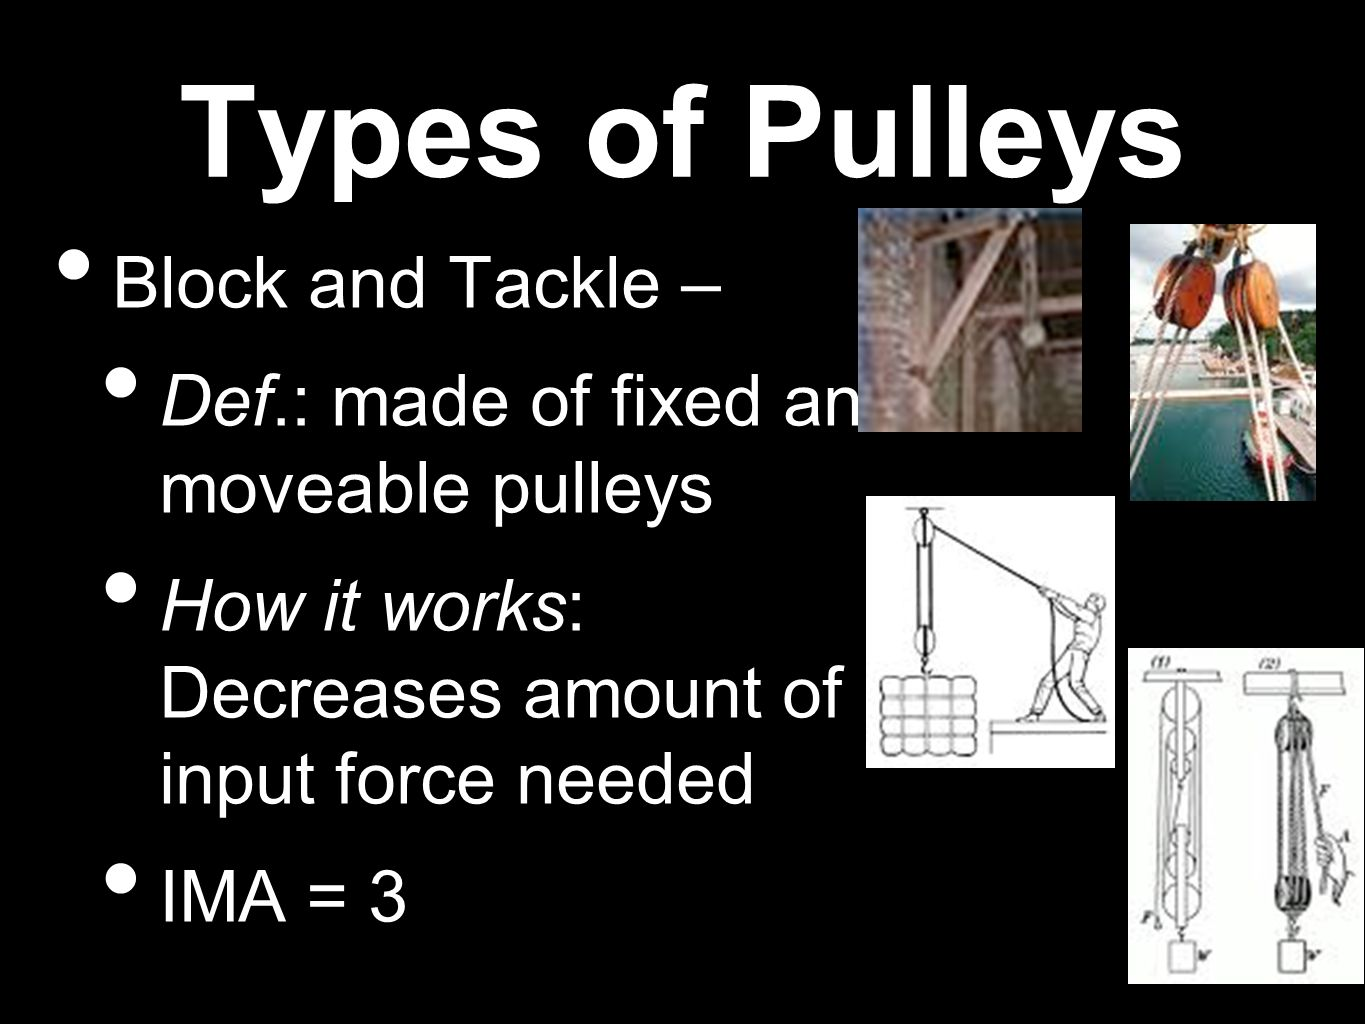 Types of Pulleys Block and Tackle – Def.: made of fixed and moveable pulleys How it works: Decreases amount of input force needed IMA = 3